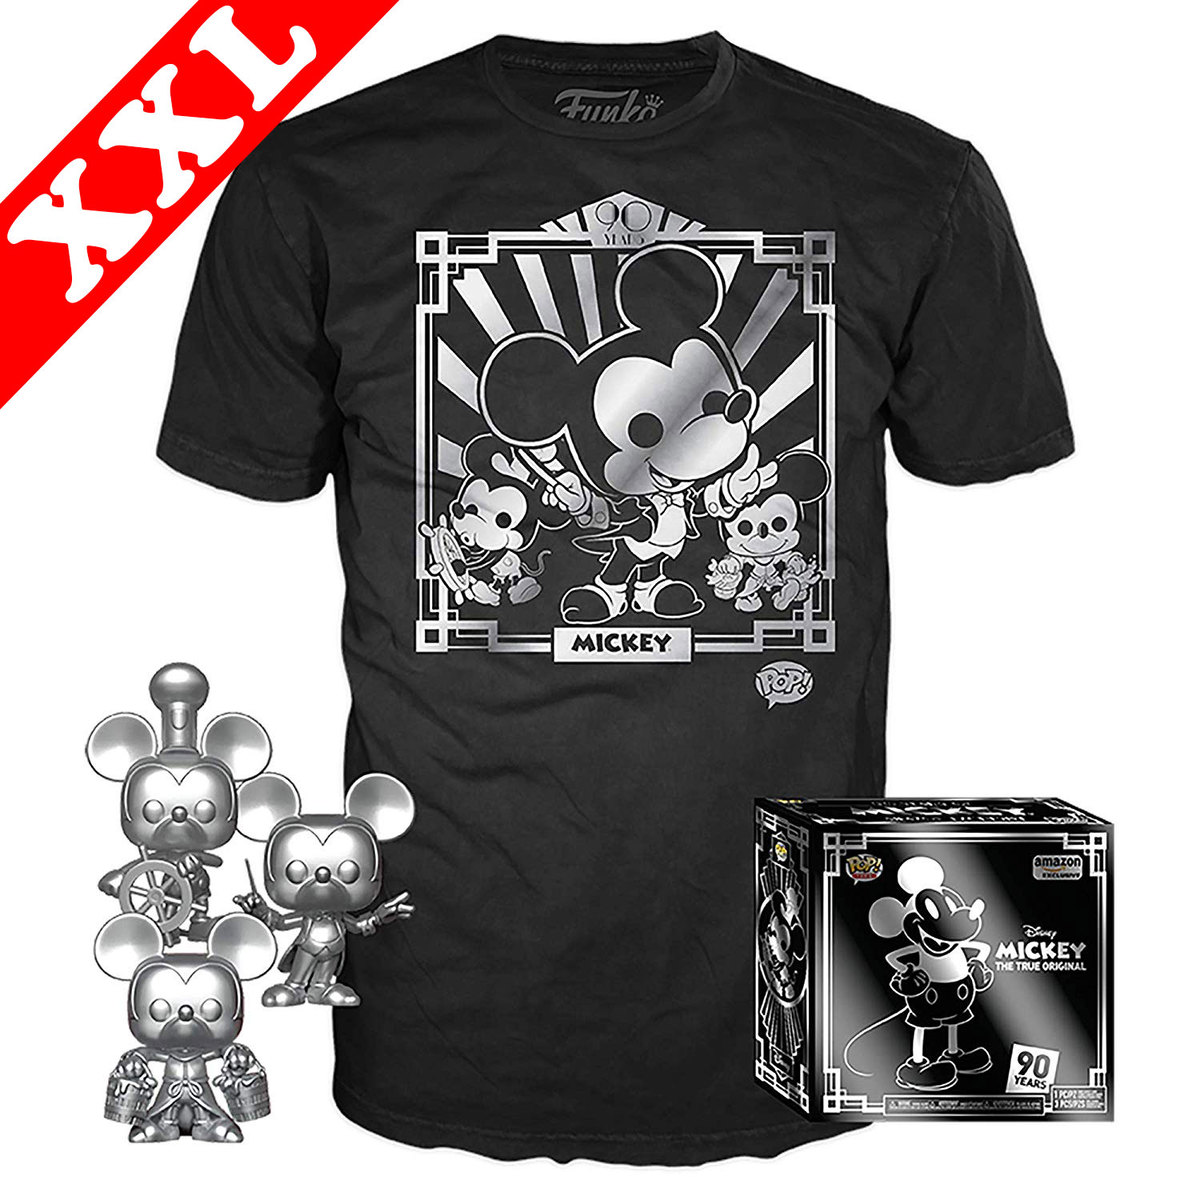 ddf47537 Collectors Box: Mickey Mouse 90 Years 3 Pack POP! & T-Shirt Set - Exclusive  Import - New, Mint [Size: XXL]